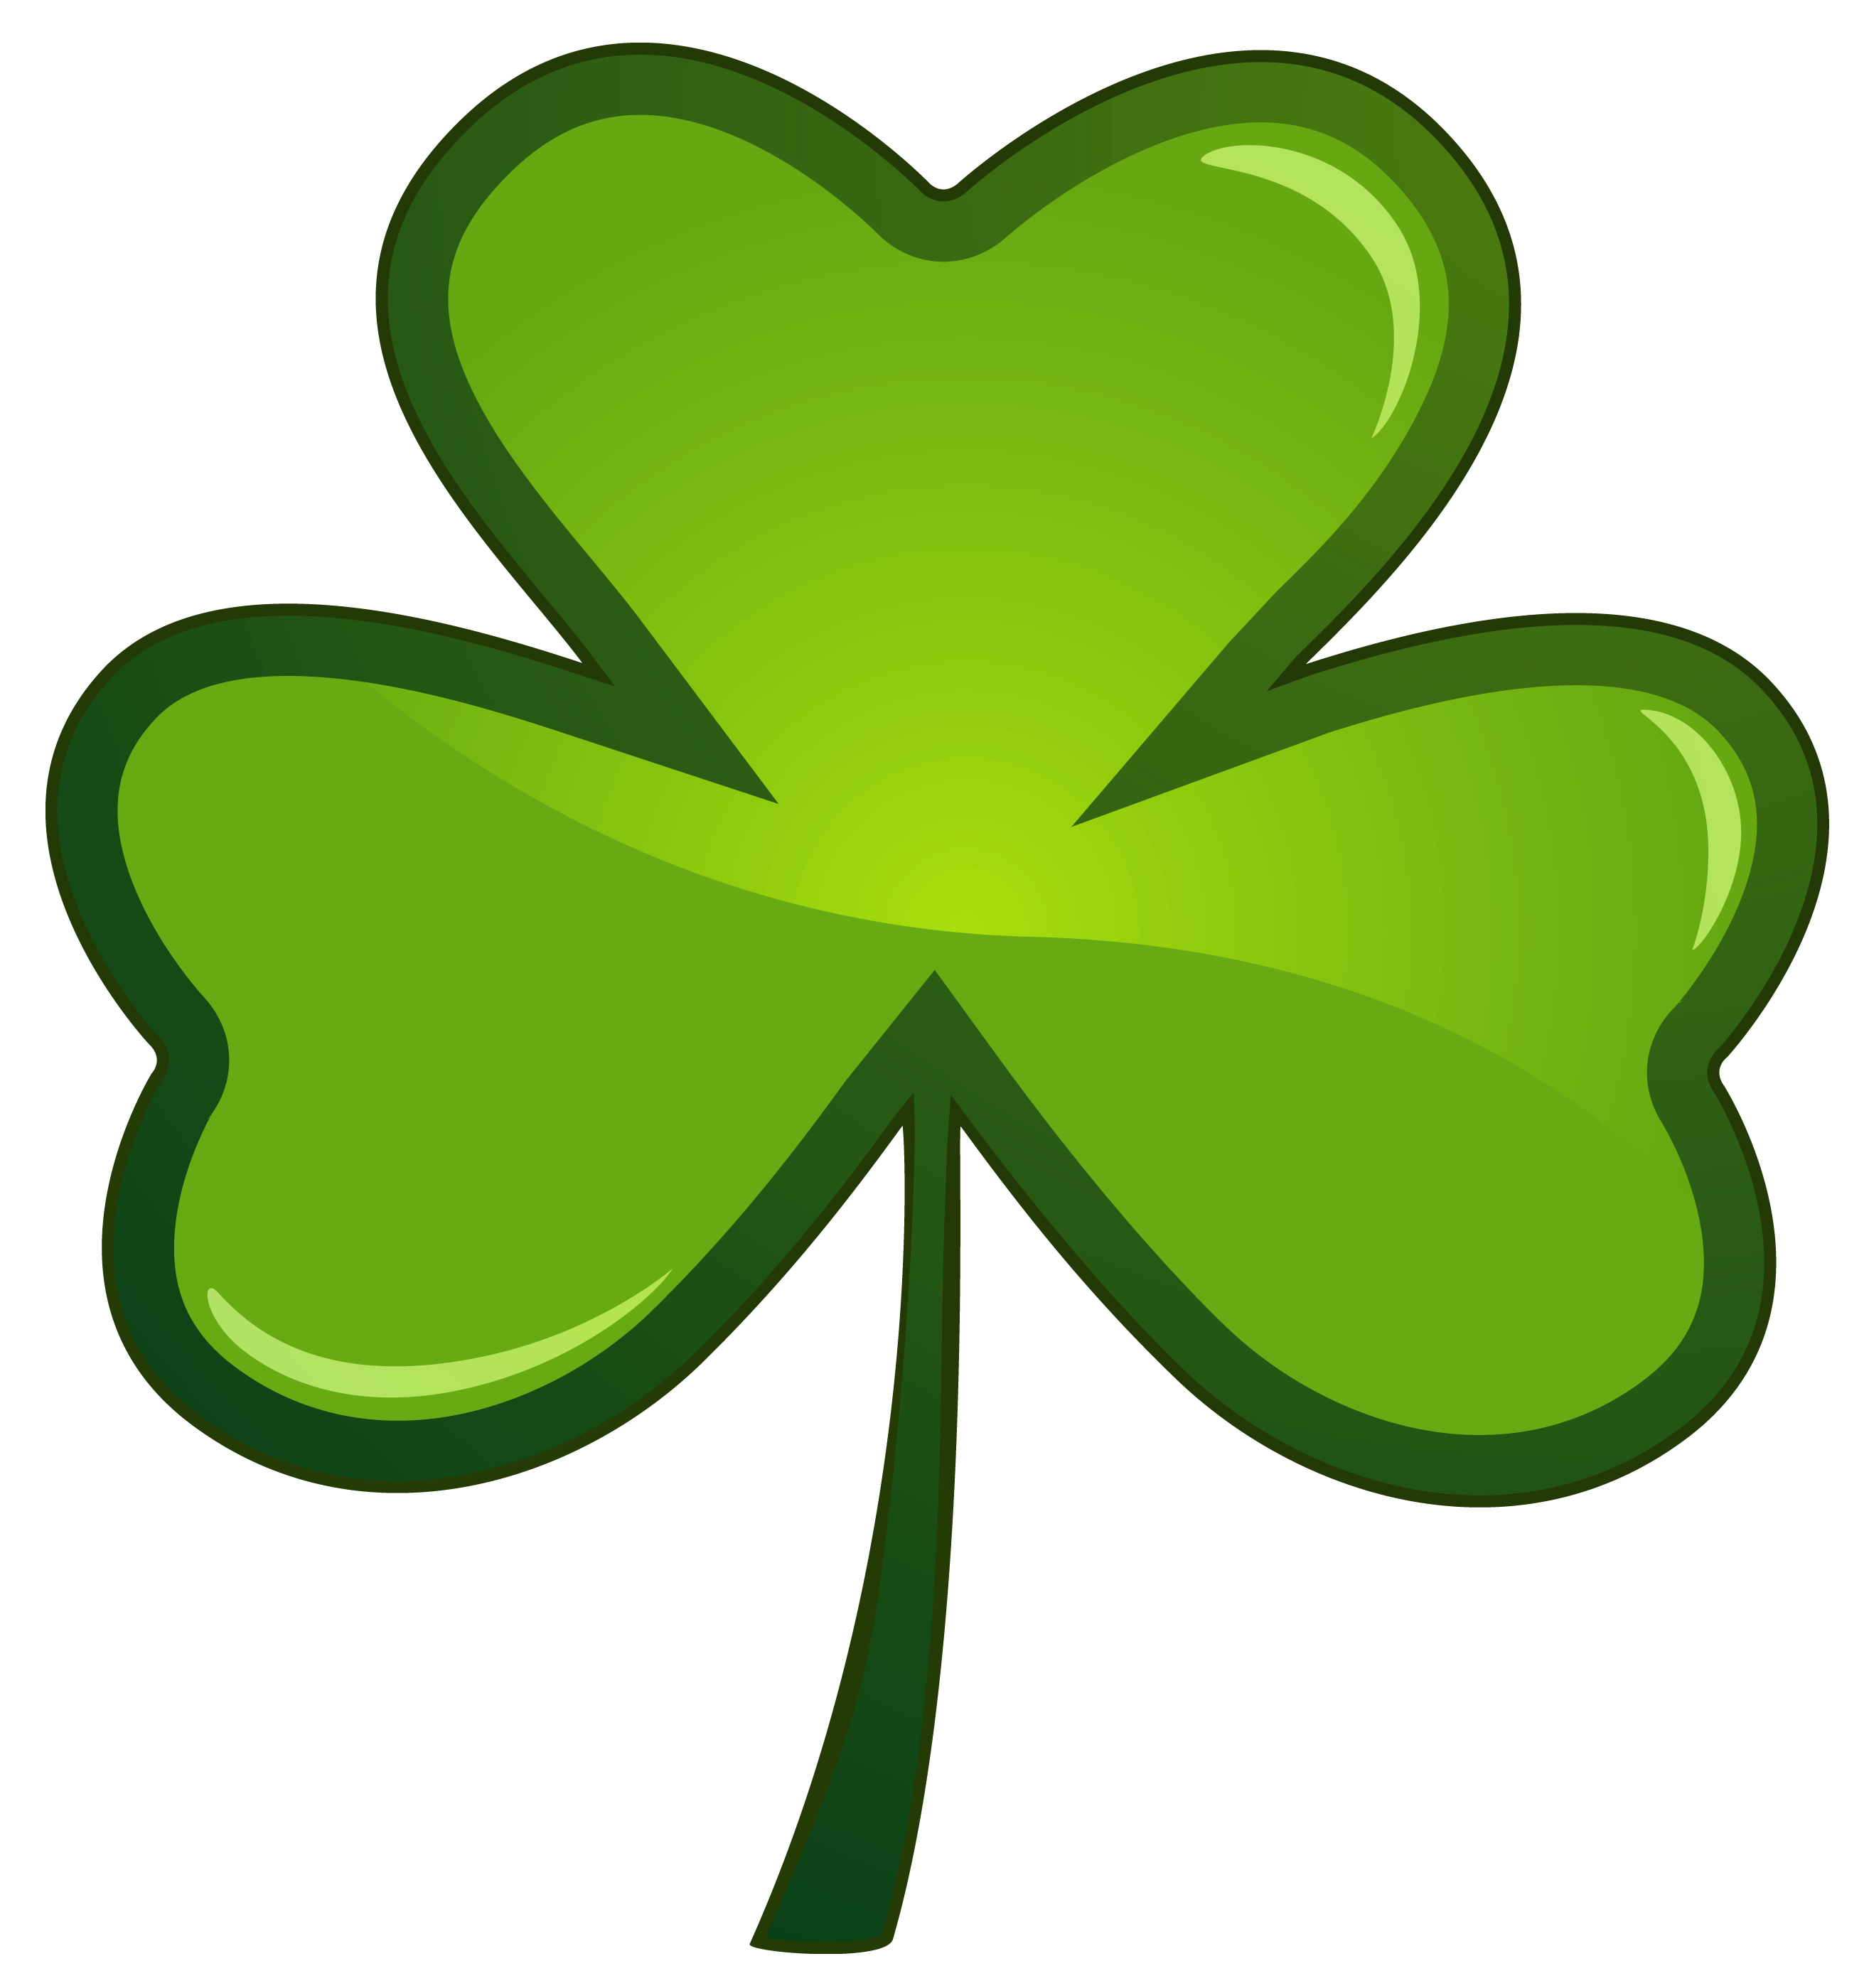 St. Patrick's Day clipart #14